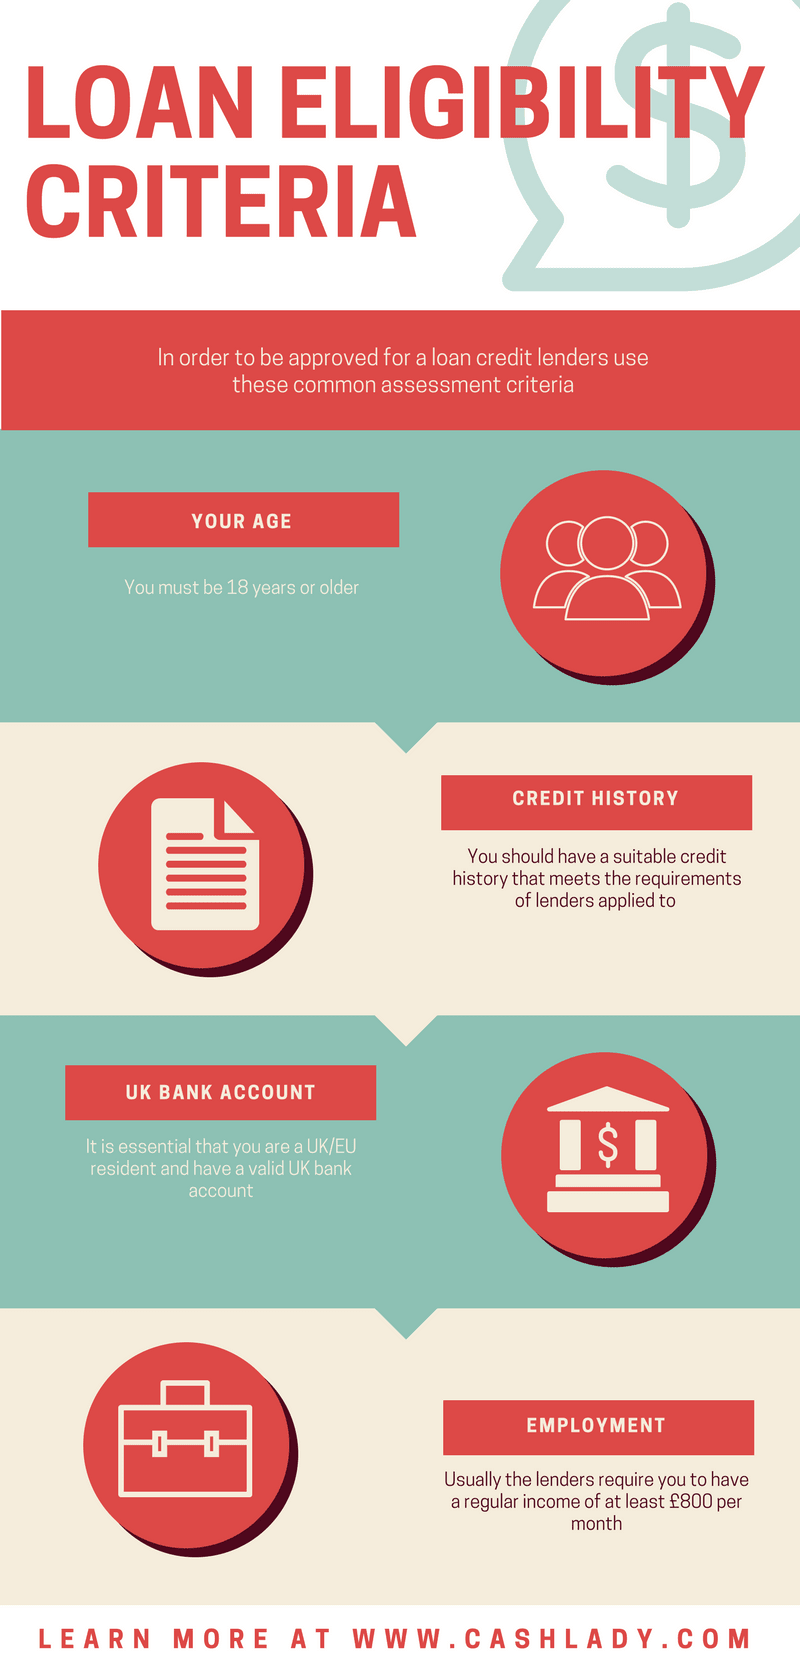 an infographic explains eligibility criteria people need to comply while applying for a loan